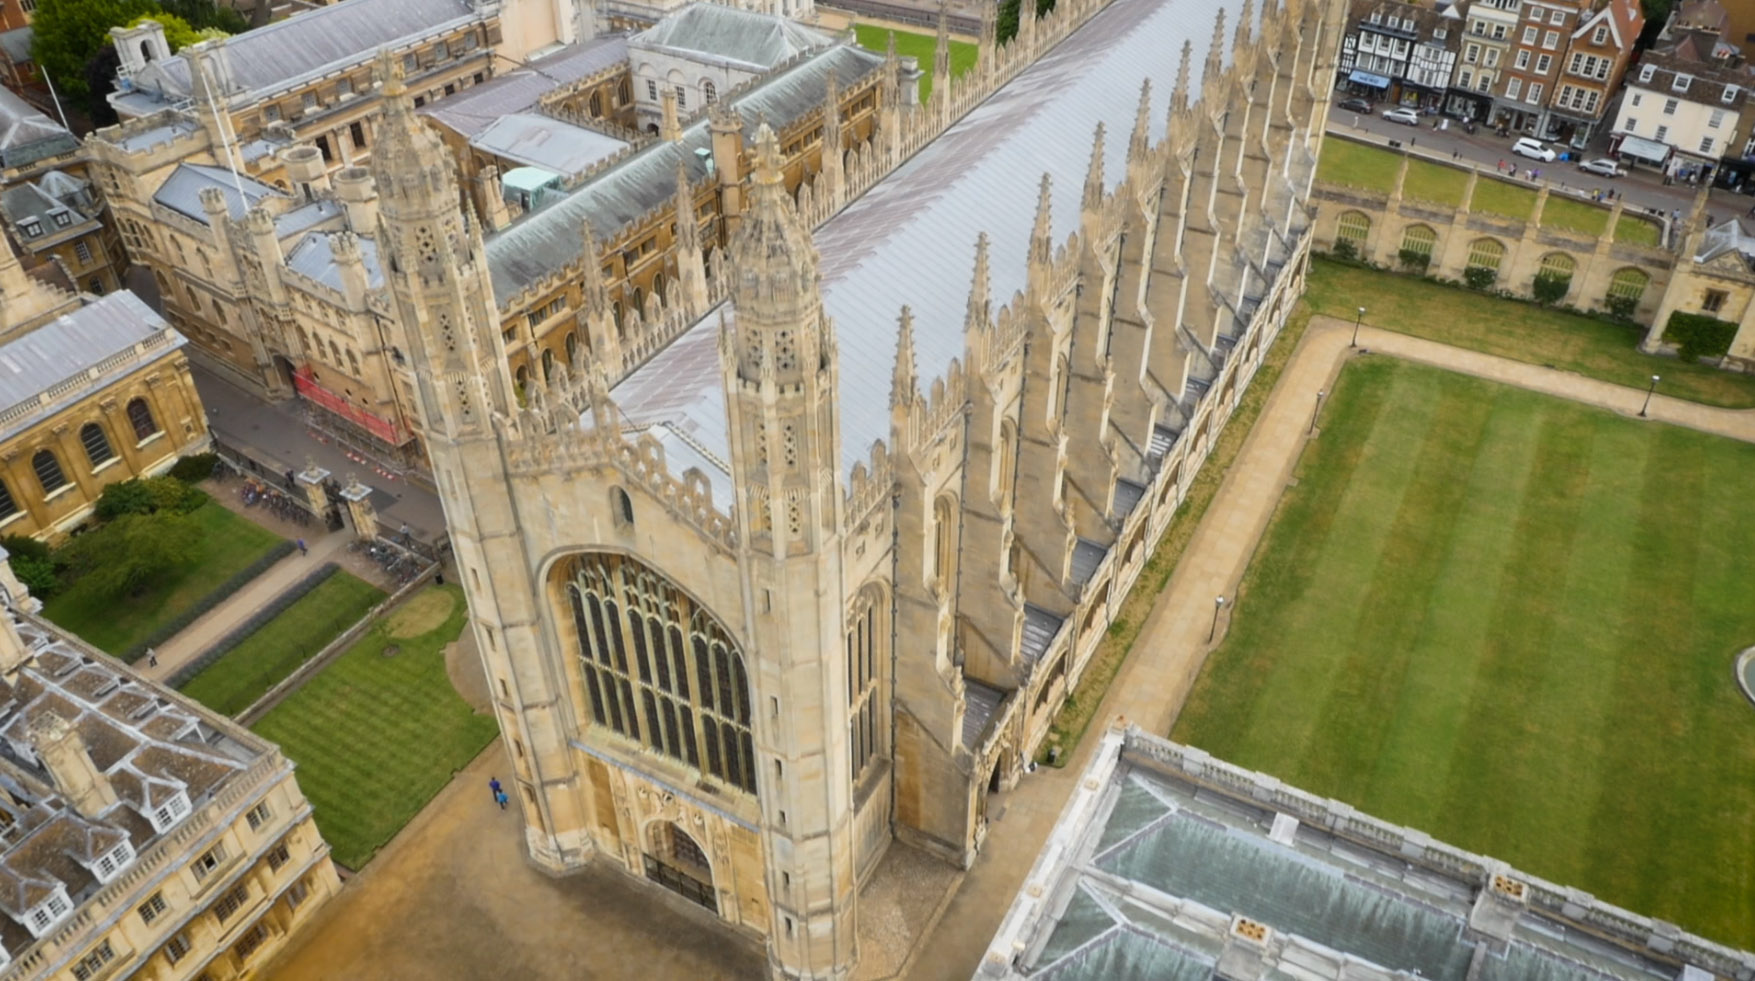 King's College Chapel from above